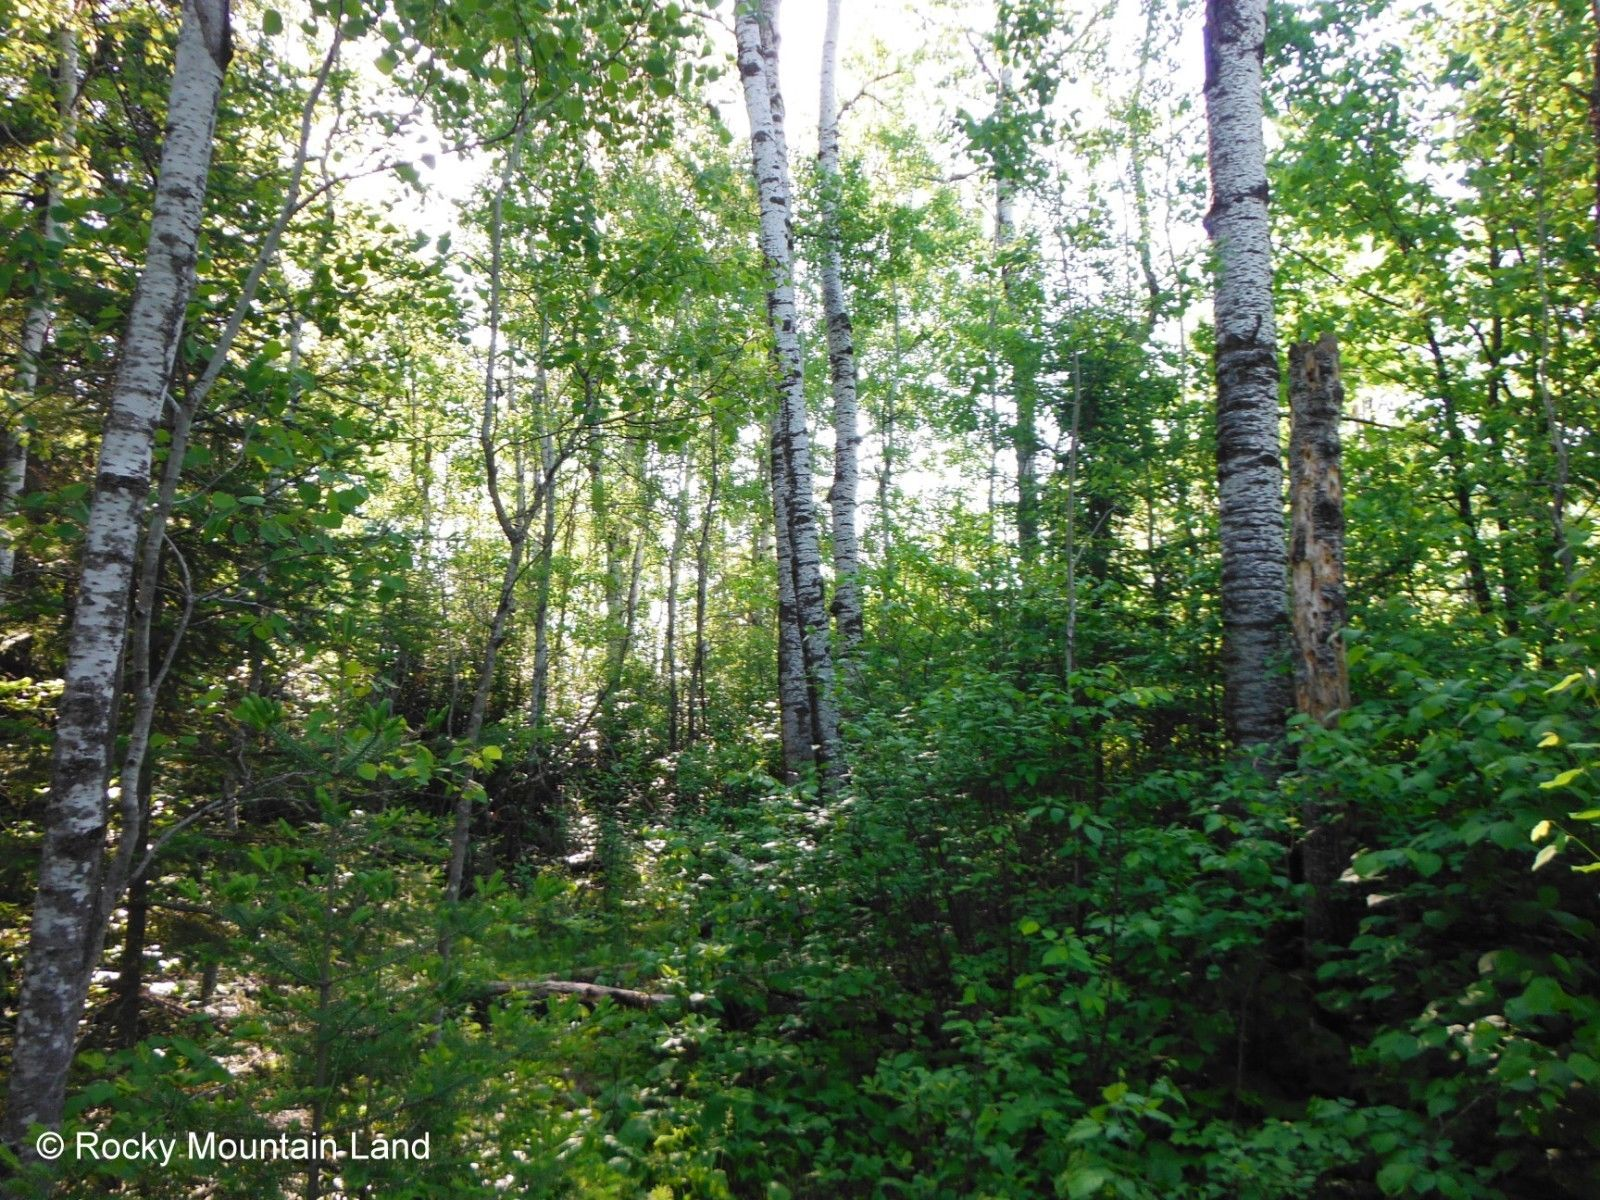 40-ACRES-NORTHERN-MINNESOTA-FOREST-HIGHWAY-FRONTAGE-BORDERS_57[1]